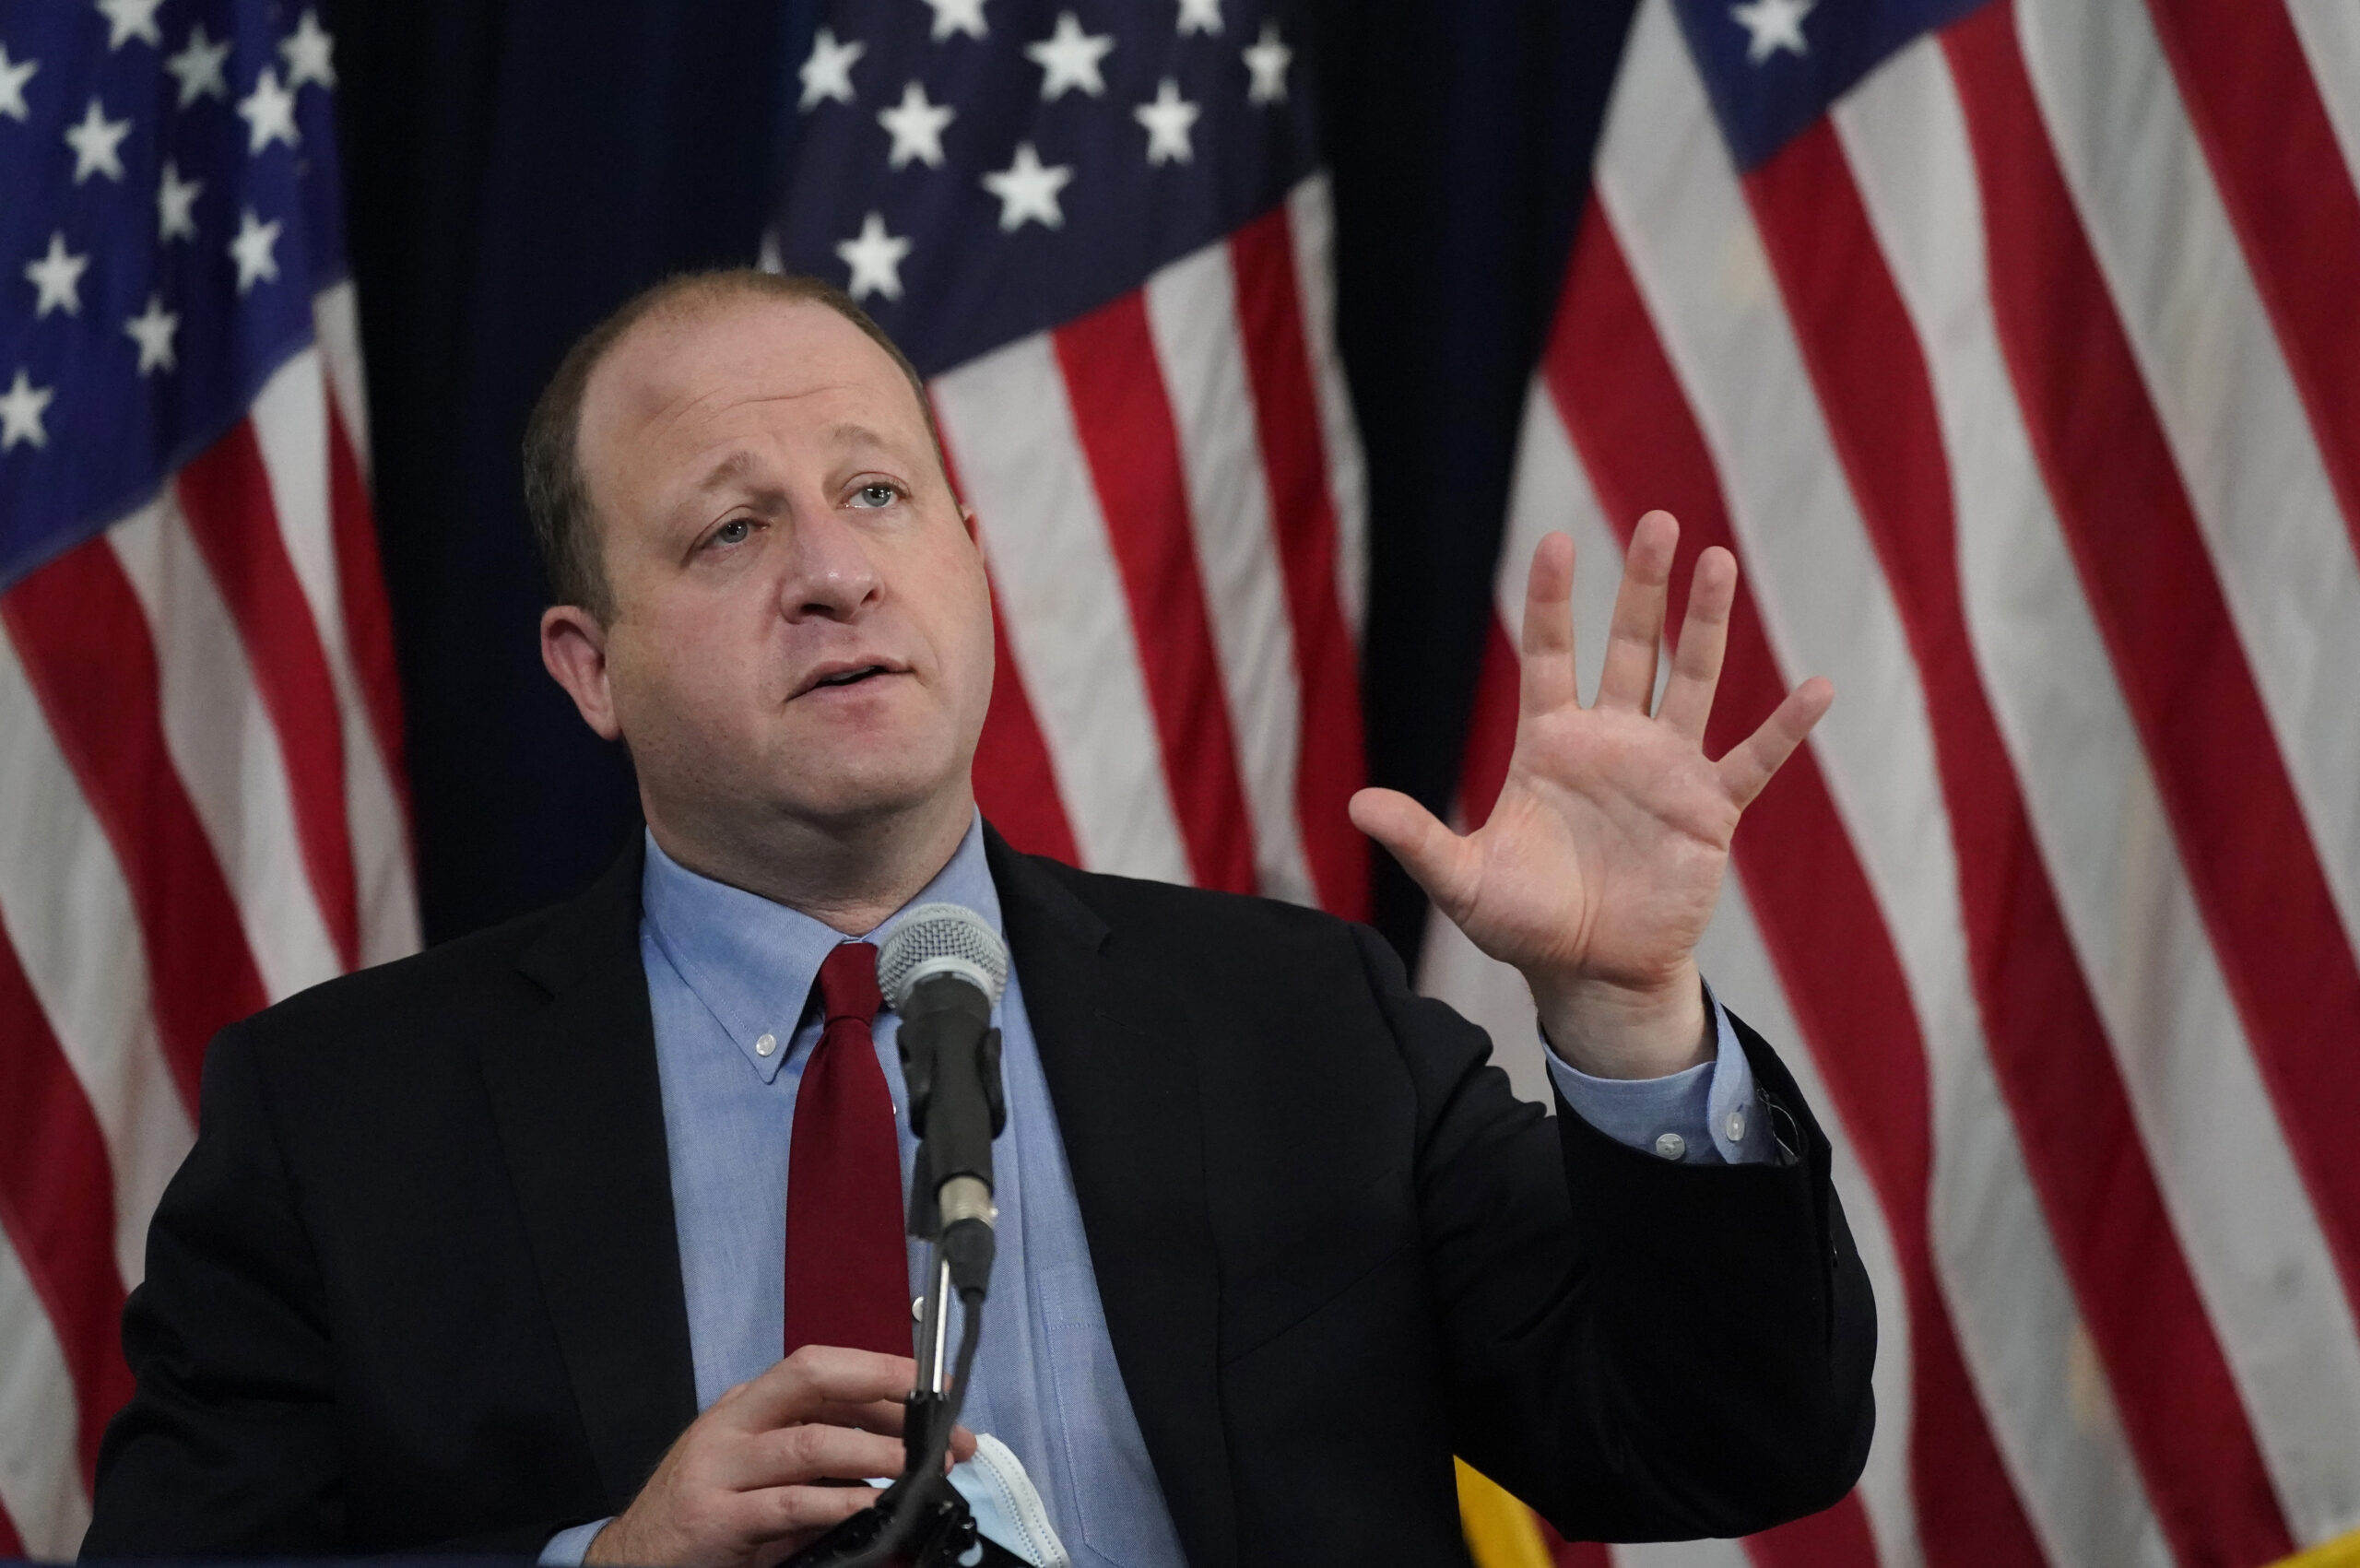 Colorado Gov. Jared Polis makes a point during a news conference Tuesday, Oct. 13, 2020, in Denver.